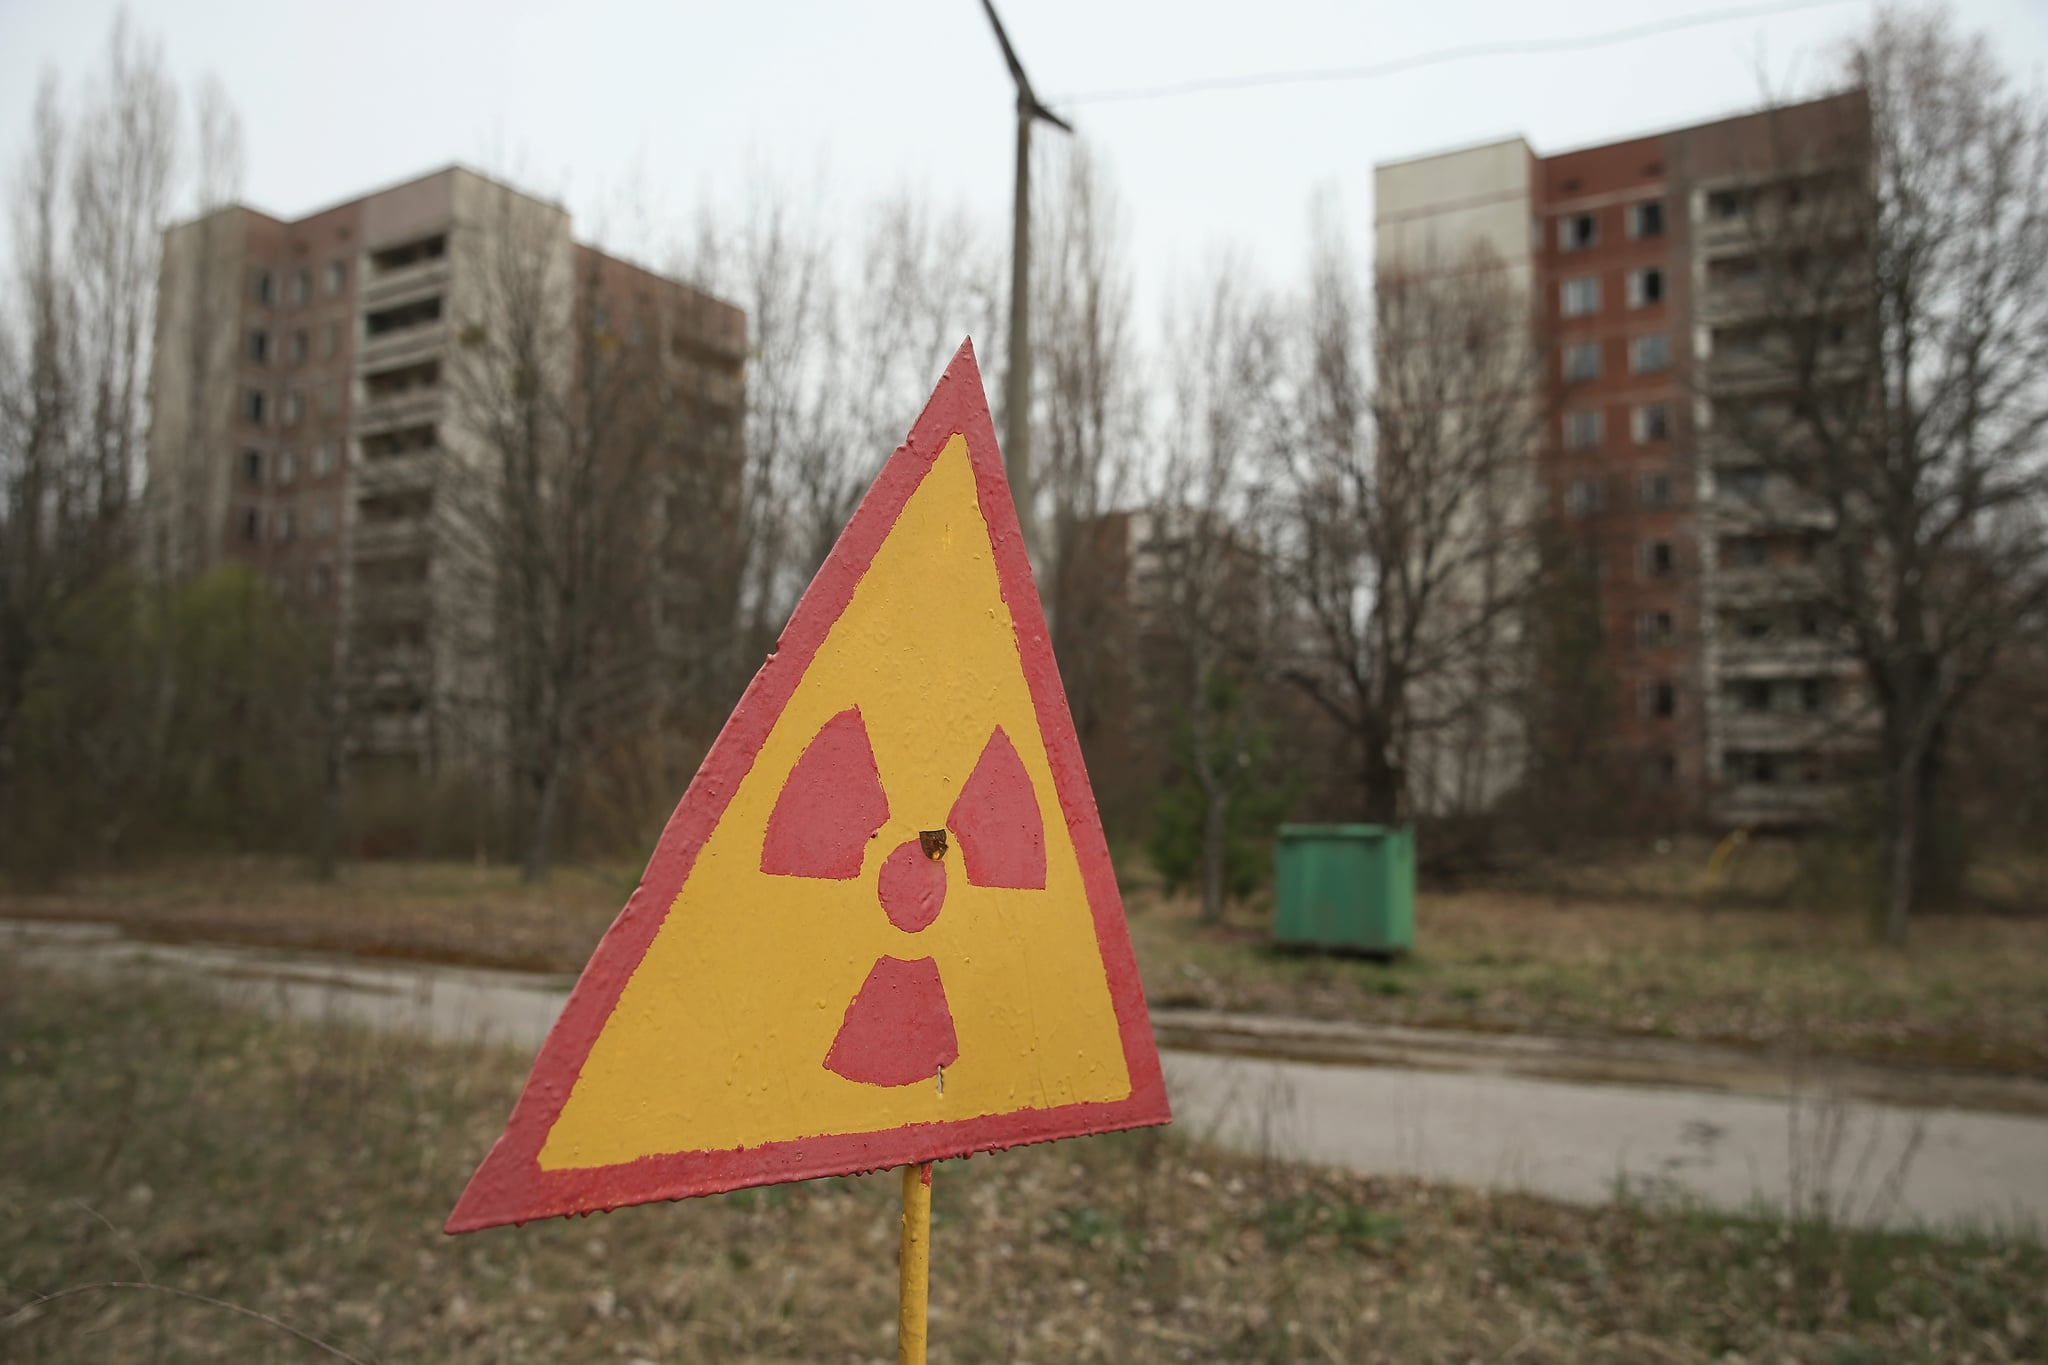 PRIPYAT, UKRAINE - APRIL 09:  A sign warns of radiation contamination near former apartment buildings on April 9, 2016 in Pripyat, Ukraine. Pripyat, built in the 1970s as a model Soviet city to house the workers and families of the Chernobyl nuclear power plant, now stands abandoned inside the Chernobyl Exclusion Zone, a restricted zone contaminated by radiation from the 1986 meltdown of reactor number four at the nearby Chernobyl plant in the world's worst civilian nuclear accident that spewed radiaoactive fallout across the globe. Authorities evacuated approximately 43,000 people from Pripyat in the days following the disaster and the city, with its high-rise apartment buildings, hospital, shops, schools, restaurants, cultural centre and sports facilities, has remained a ghost-town ever since. The world will soon commemorate the 30th anniversary of the April 26, 1986 Chernobyl disaster. Today tour operators bring tourists in small groups to explore certain portions of the exclusion zone.  (Photo by Sean Gallup/Getty Images)